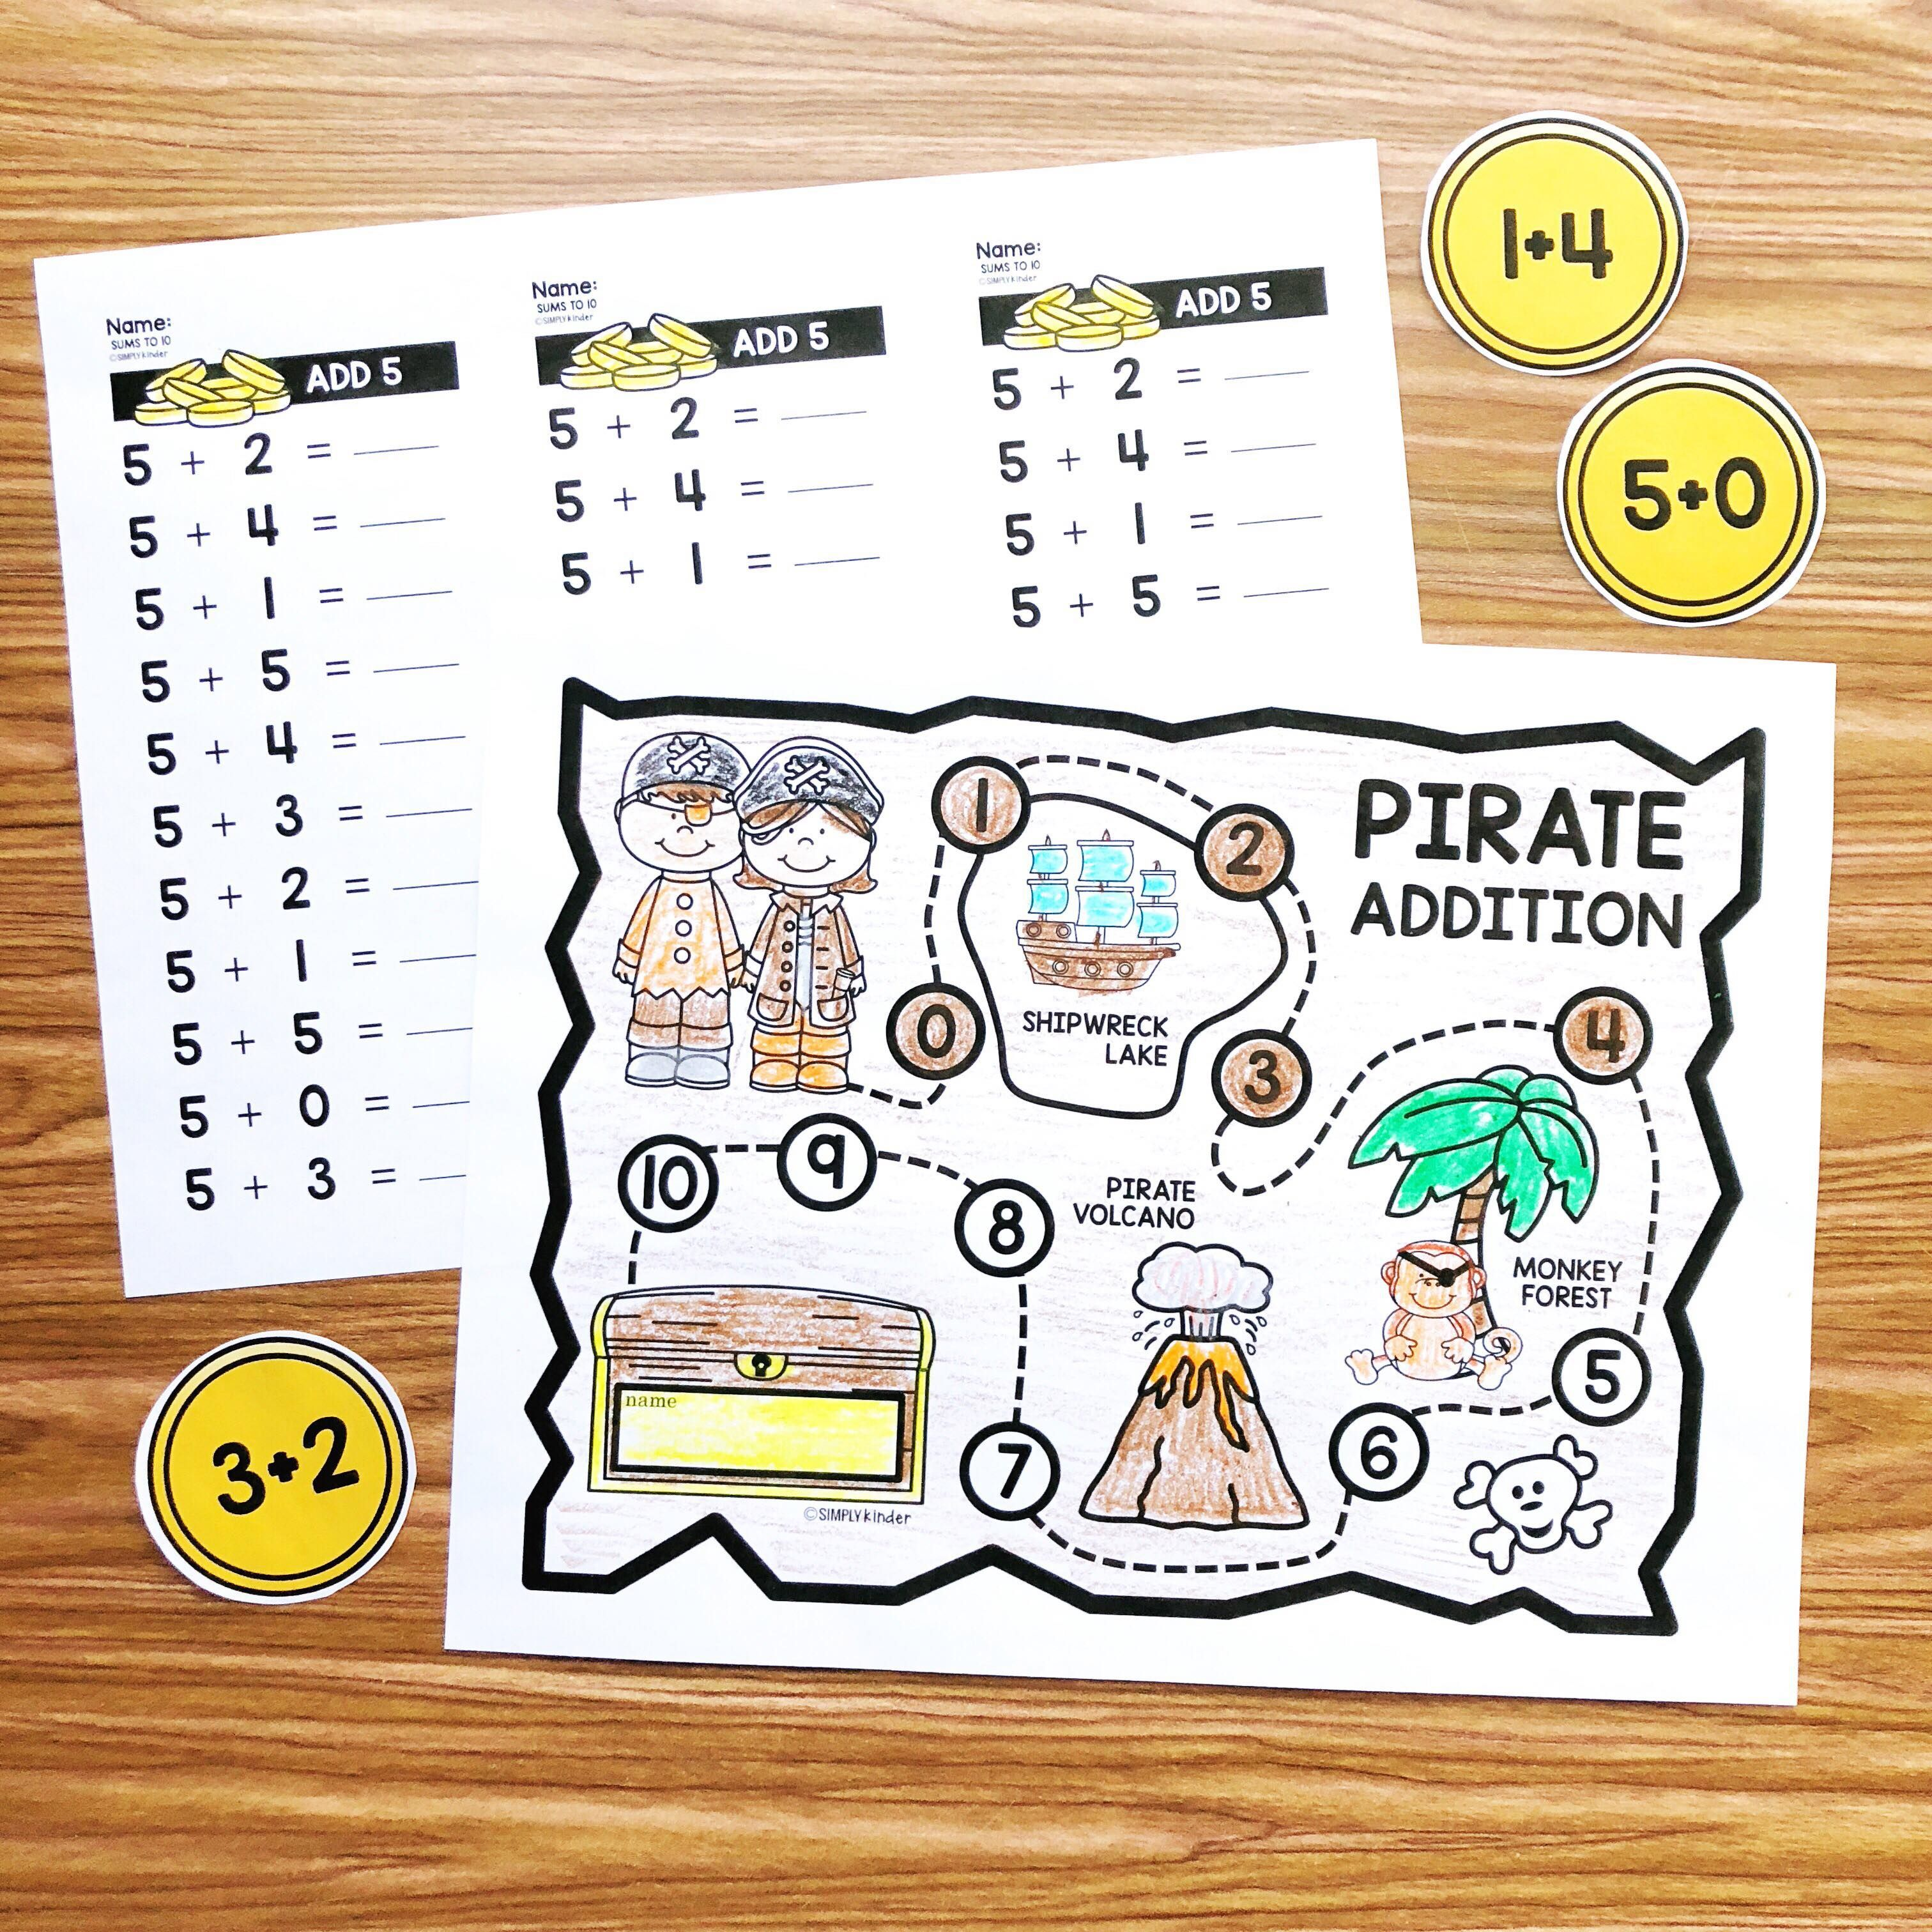 Free Pirate Math Facts Practice Simply Kinder Math Facts Pirate Maths Math Fact Practice [ 3024 x 3024 Pixel ]